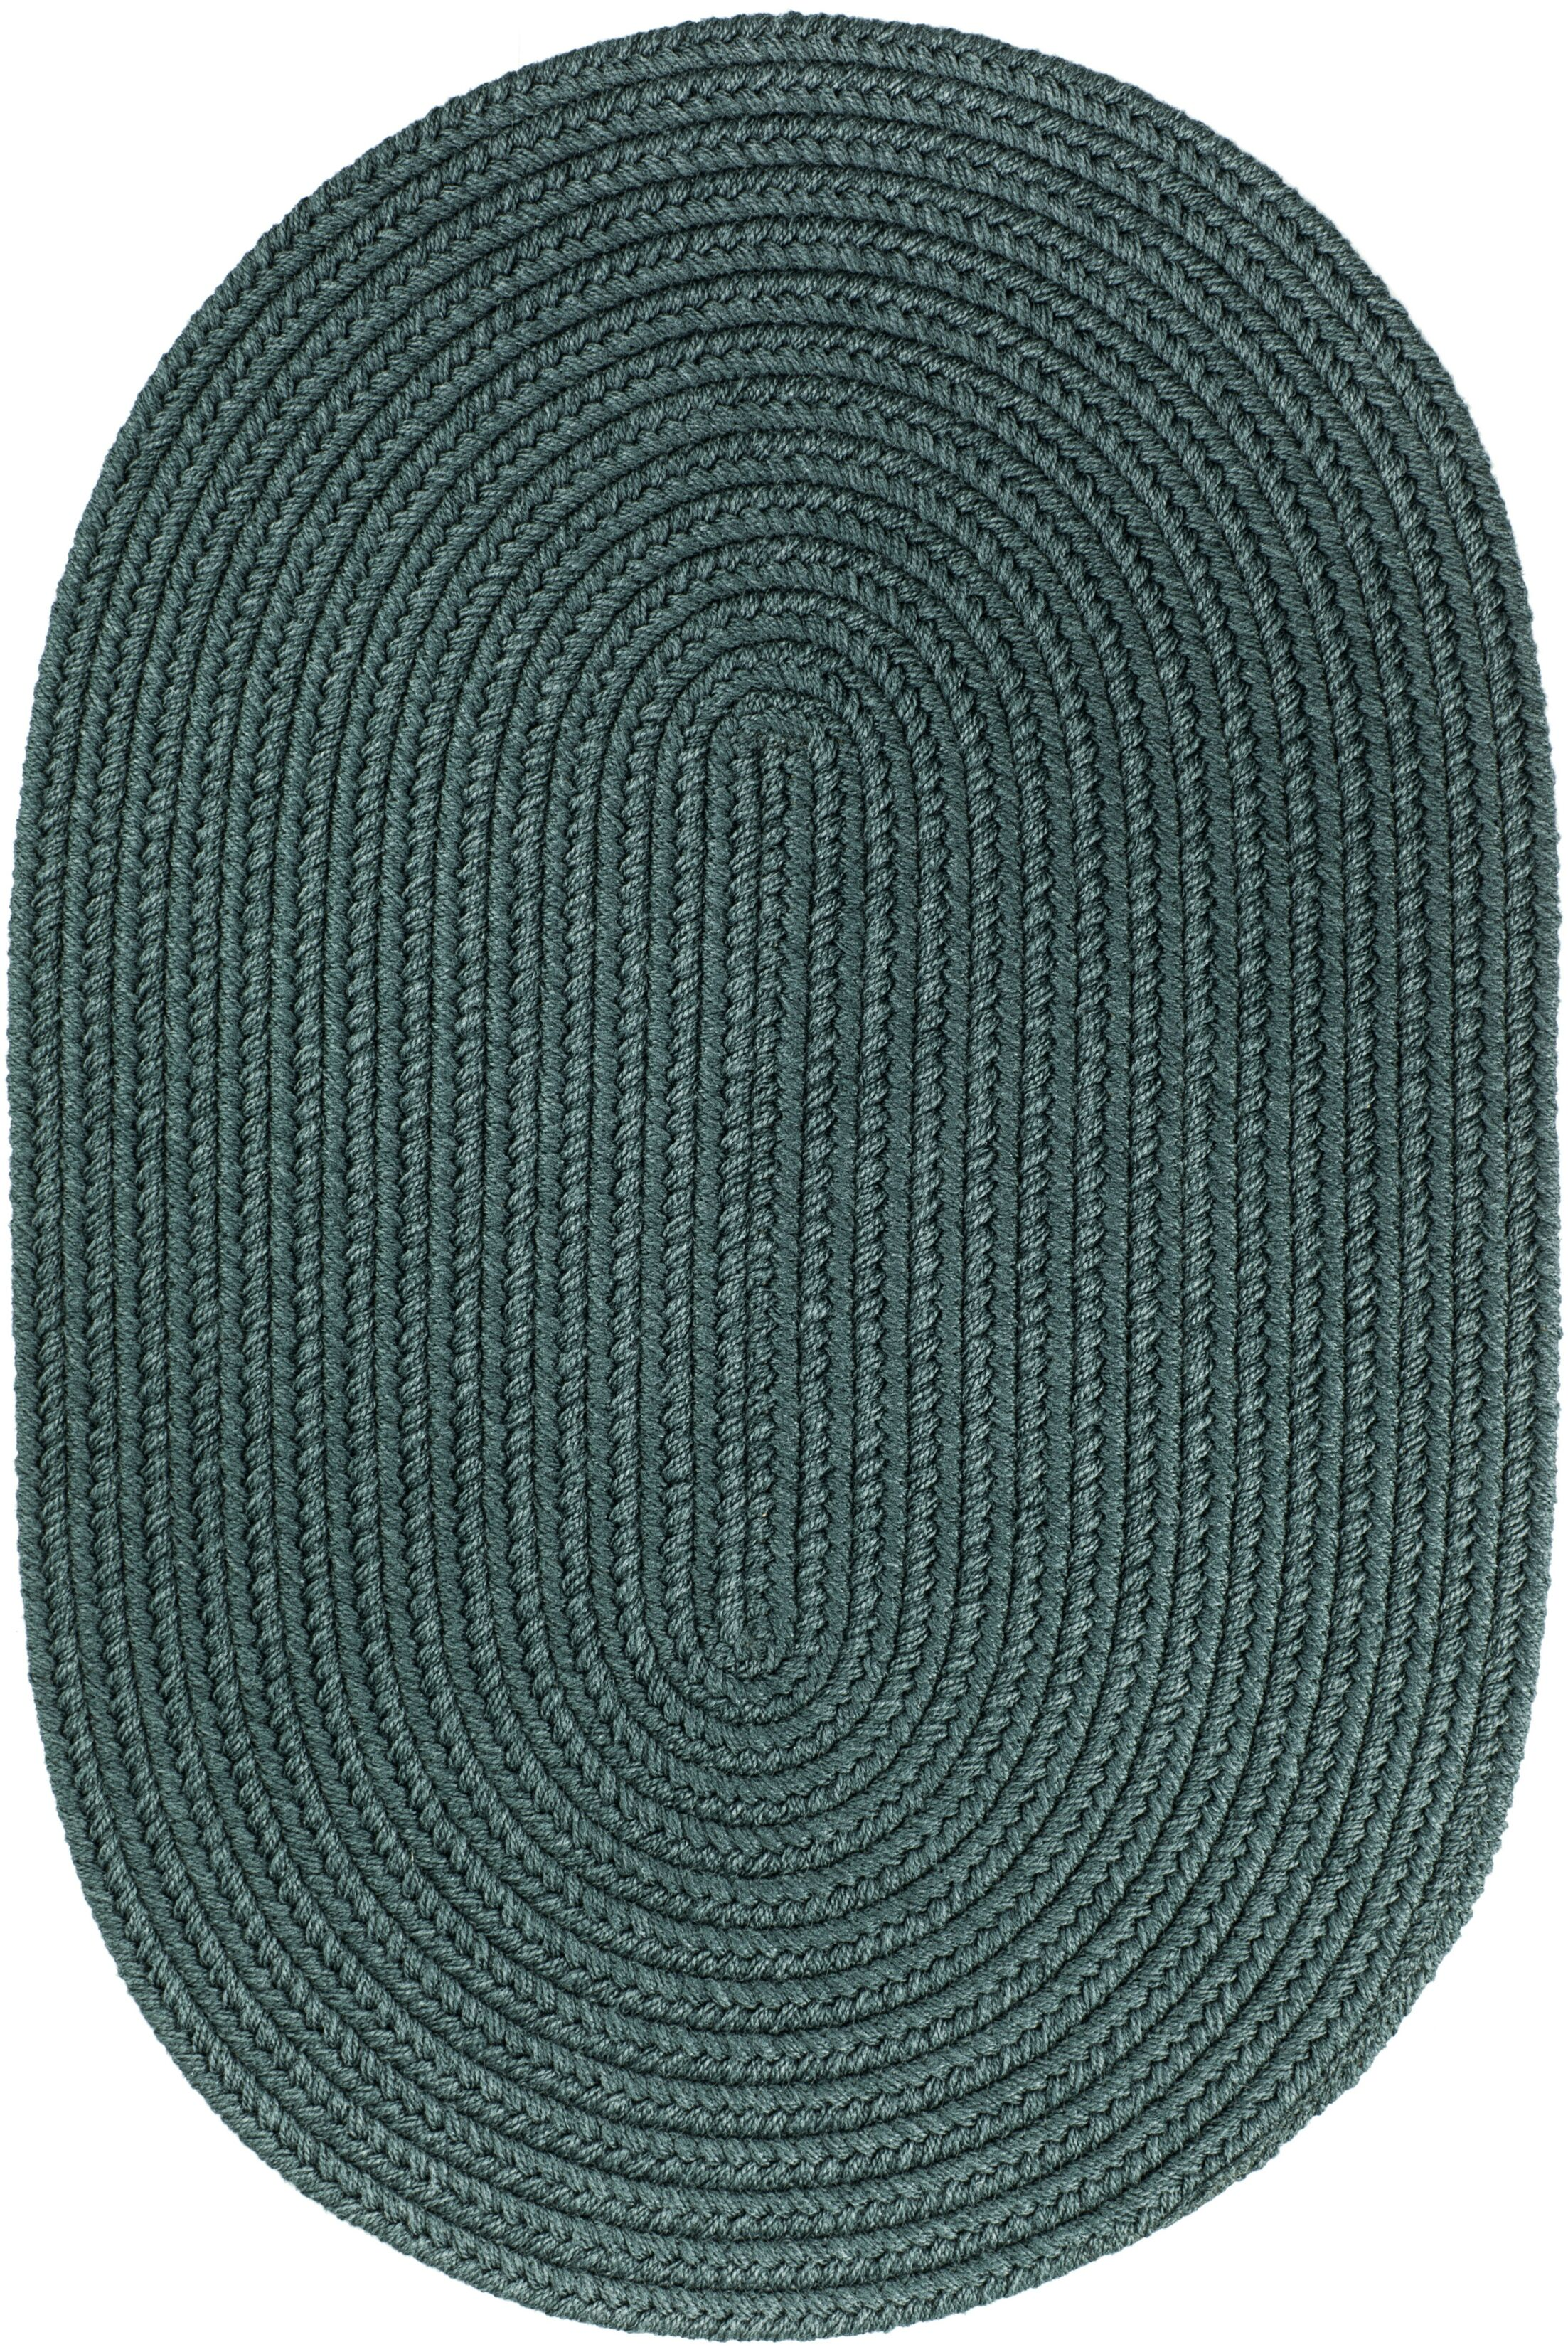 Handmade Teal Indoor/Outdoor Area Rug Rug Size: Oval 7' x 9'